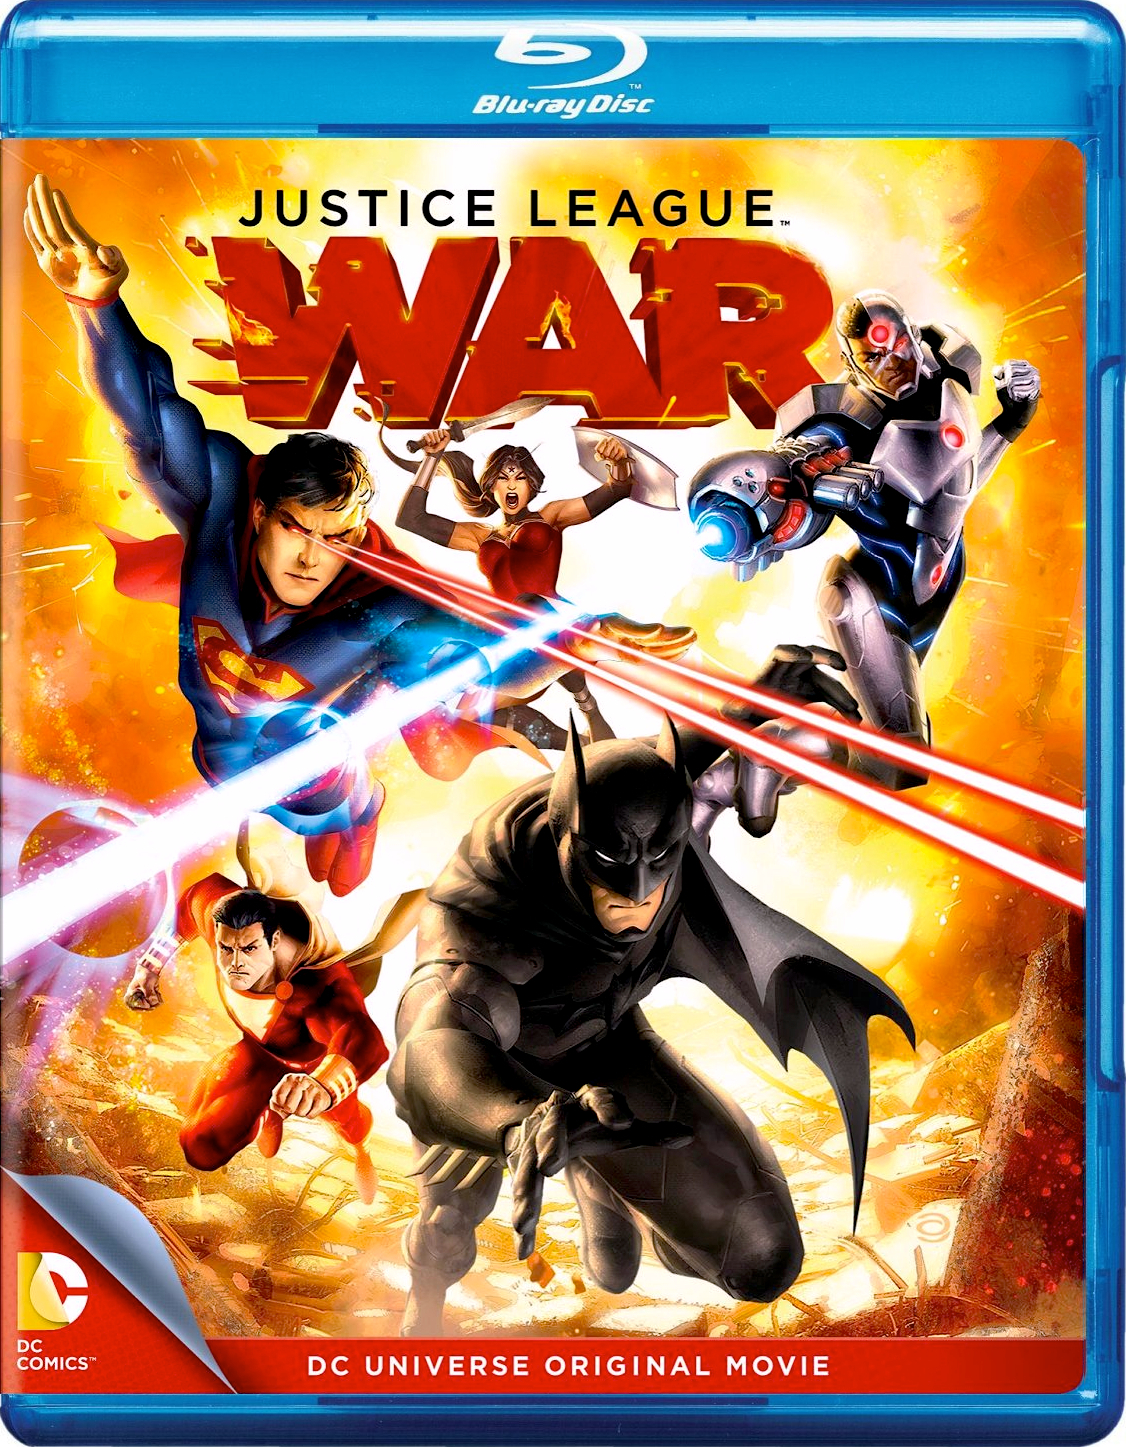 Justice League: War - First Look